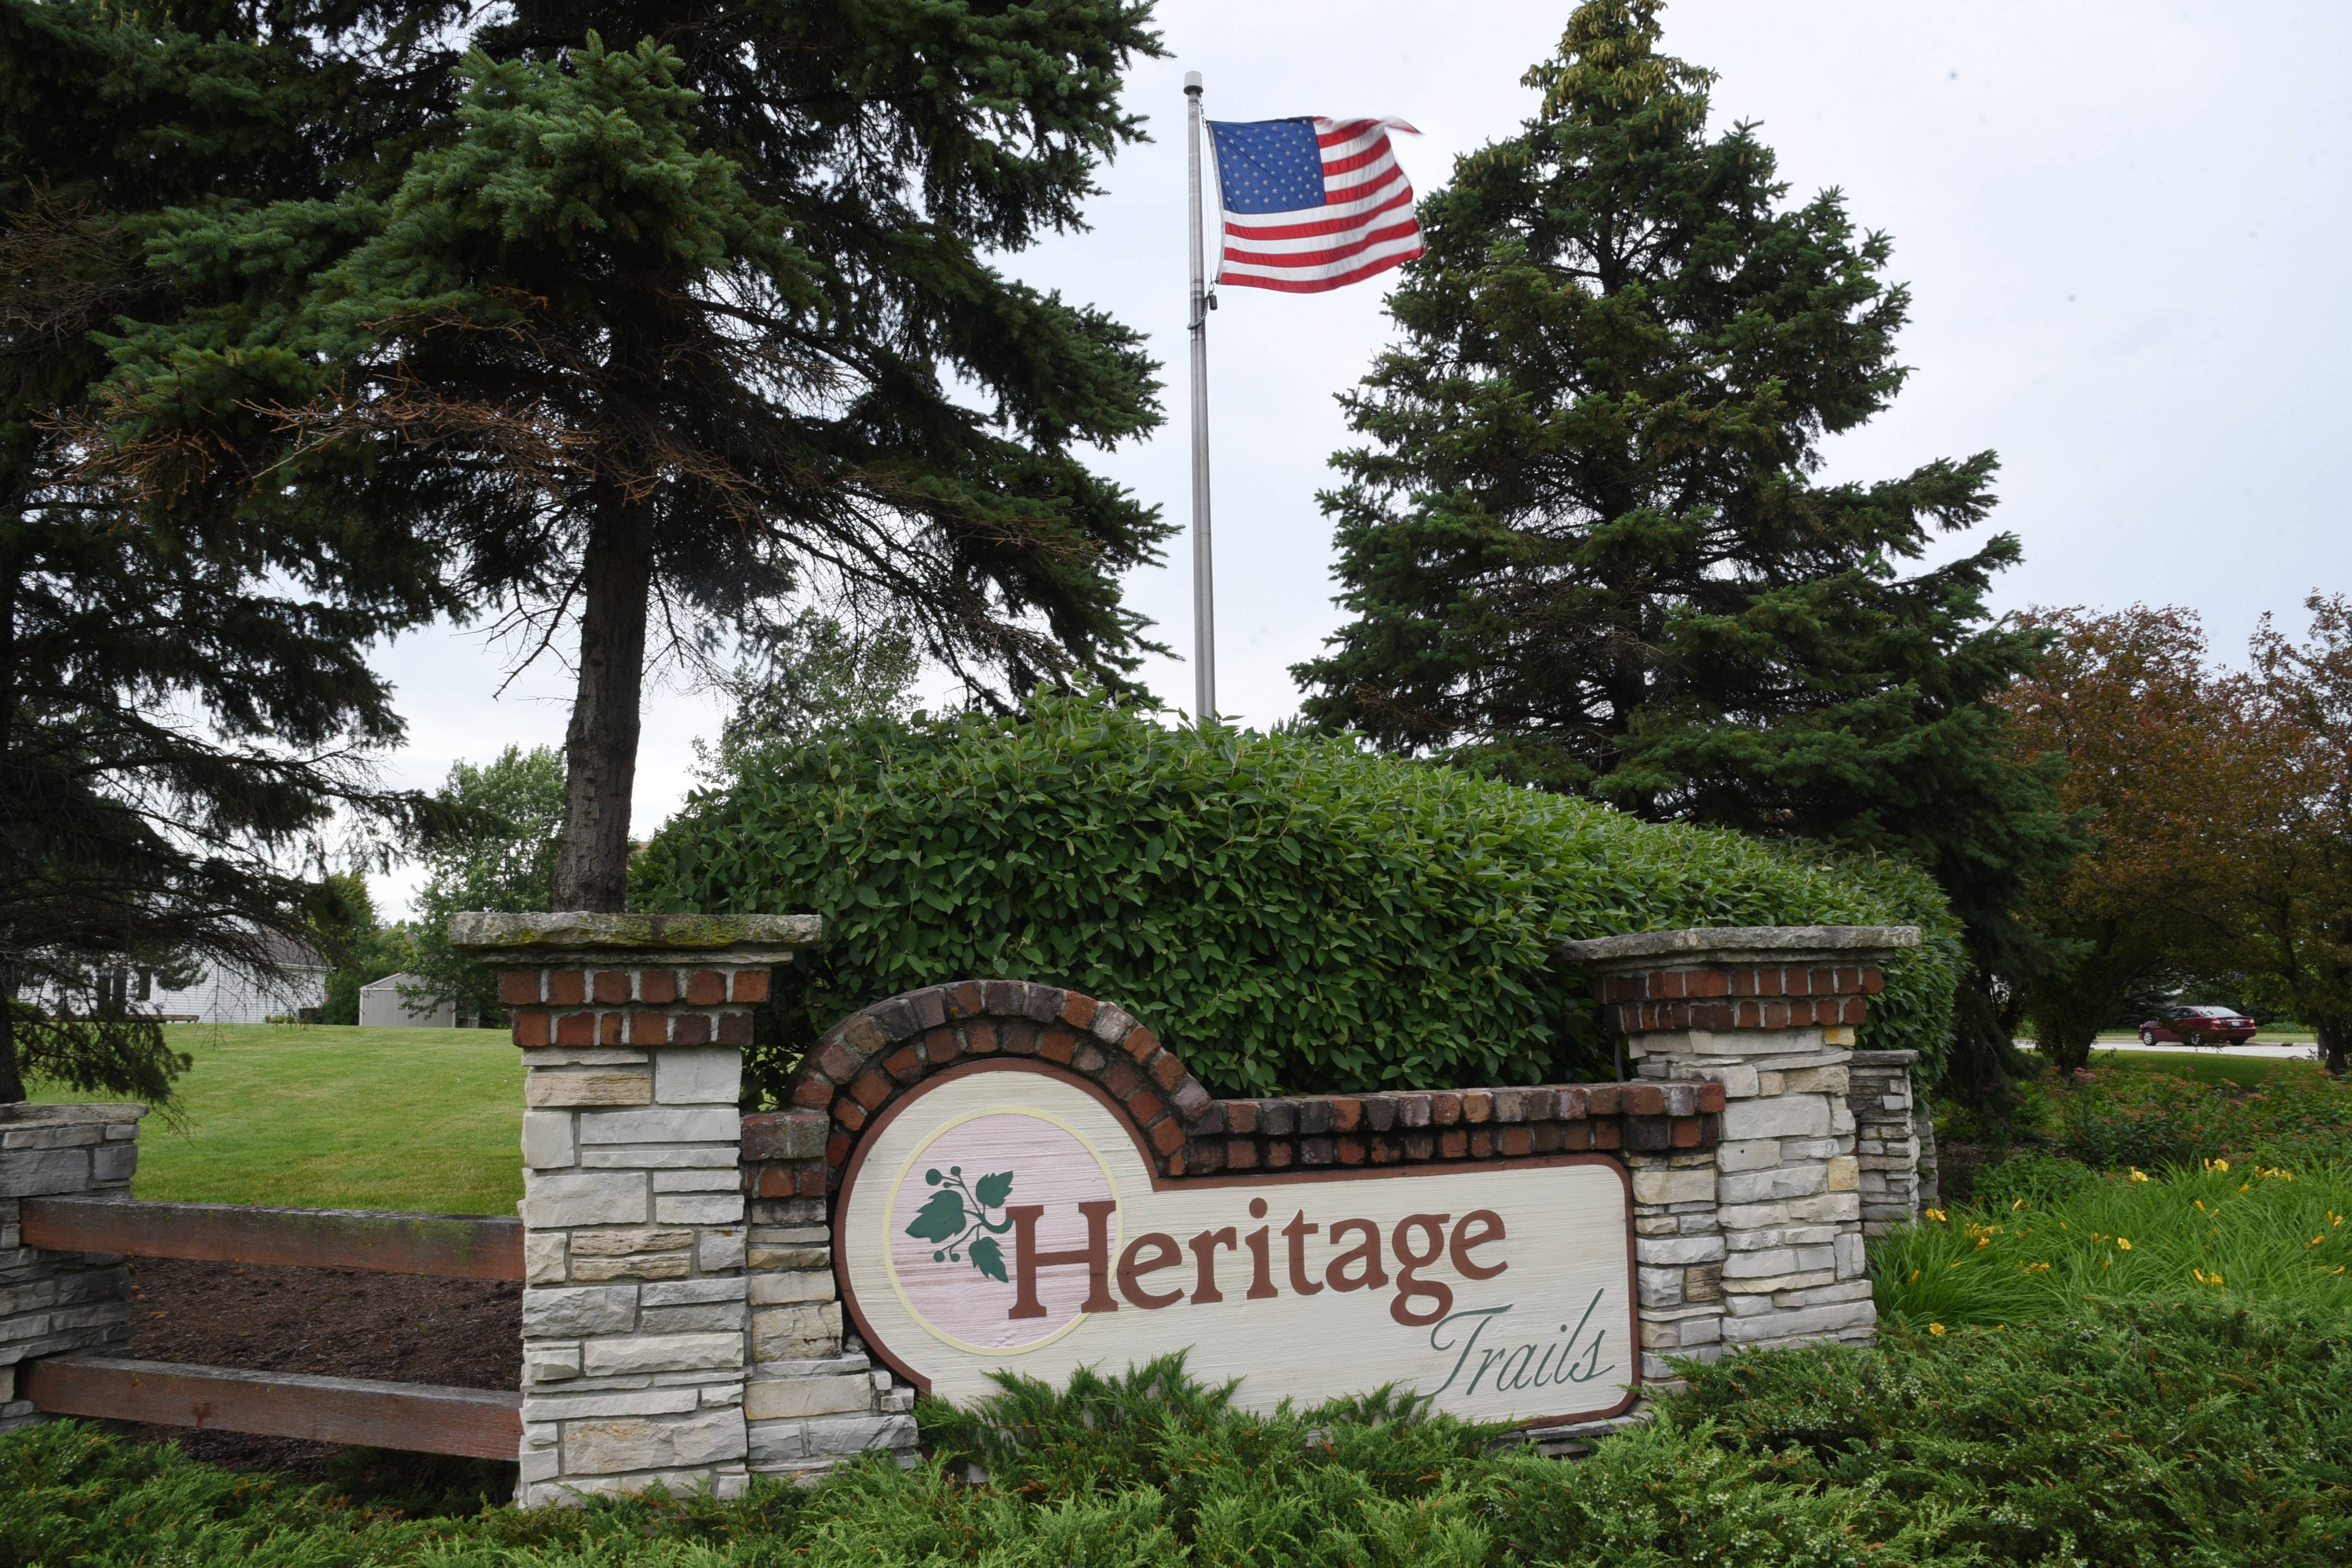 Heritage Trails subdivision in Lindenhurst features 252 single-family homes built by Westfield Homes in the late 1990s.